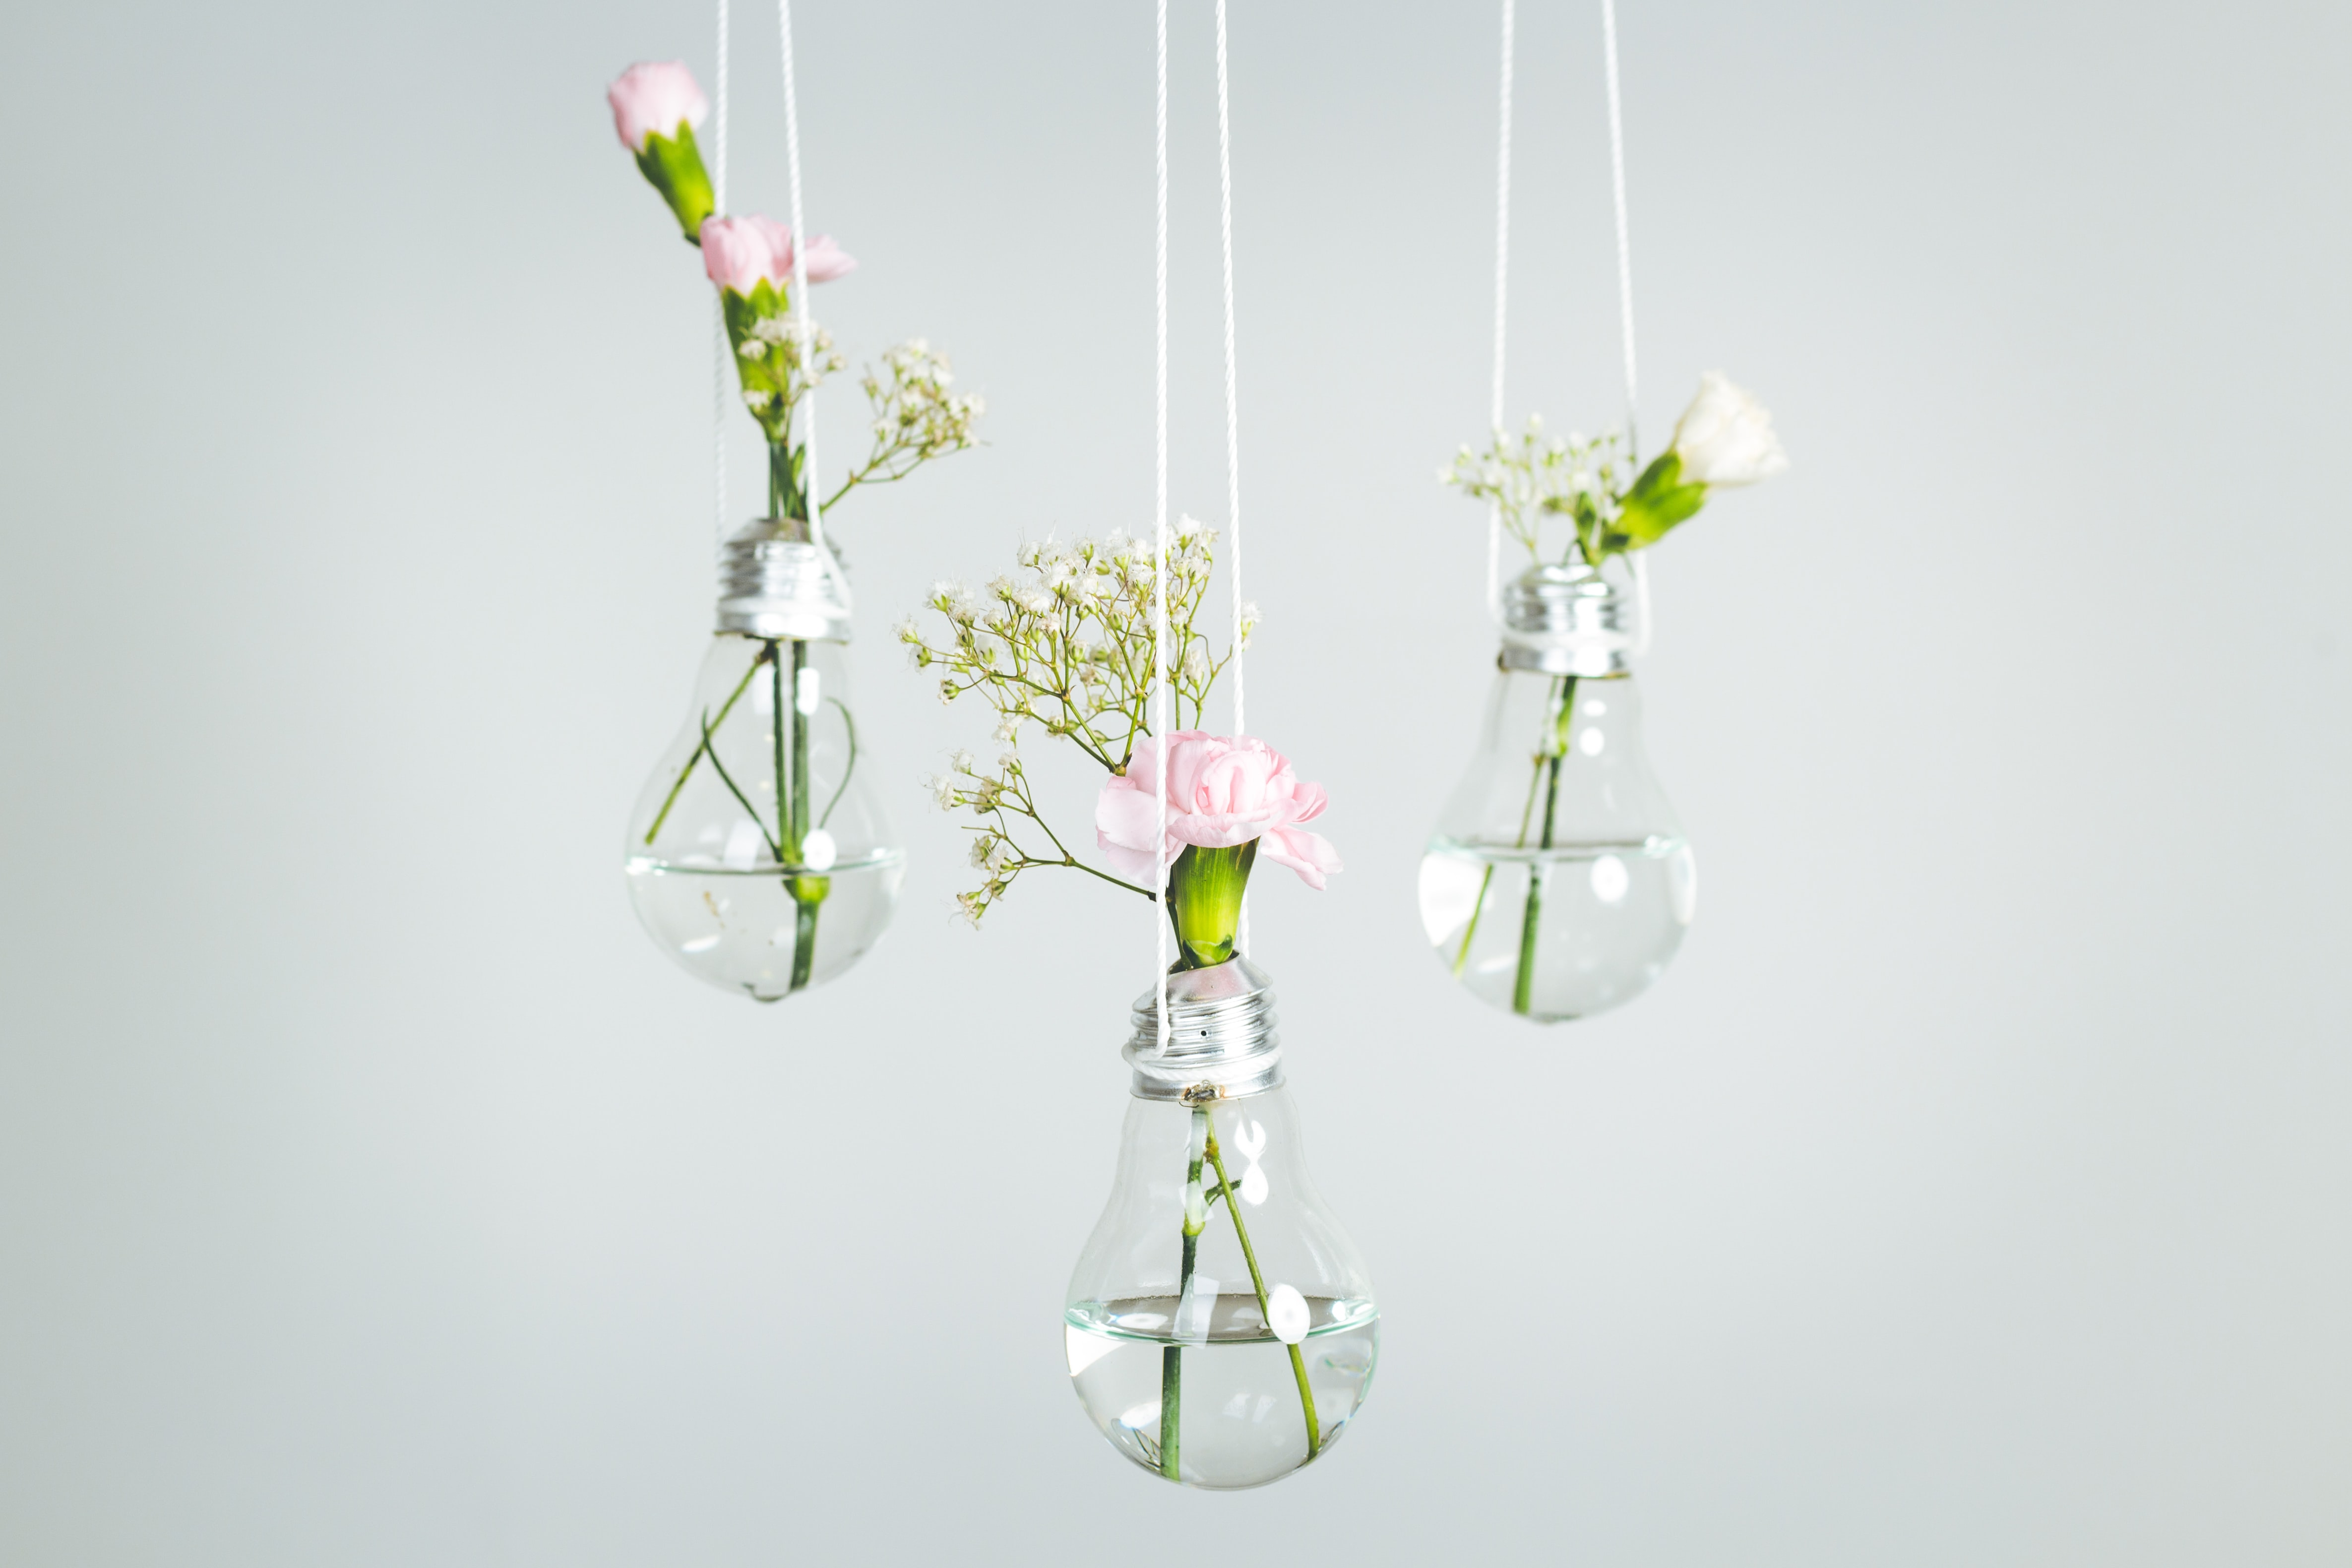 three pink petaled flowers in clear glass bulb vases